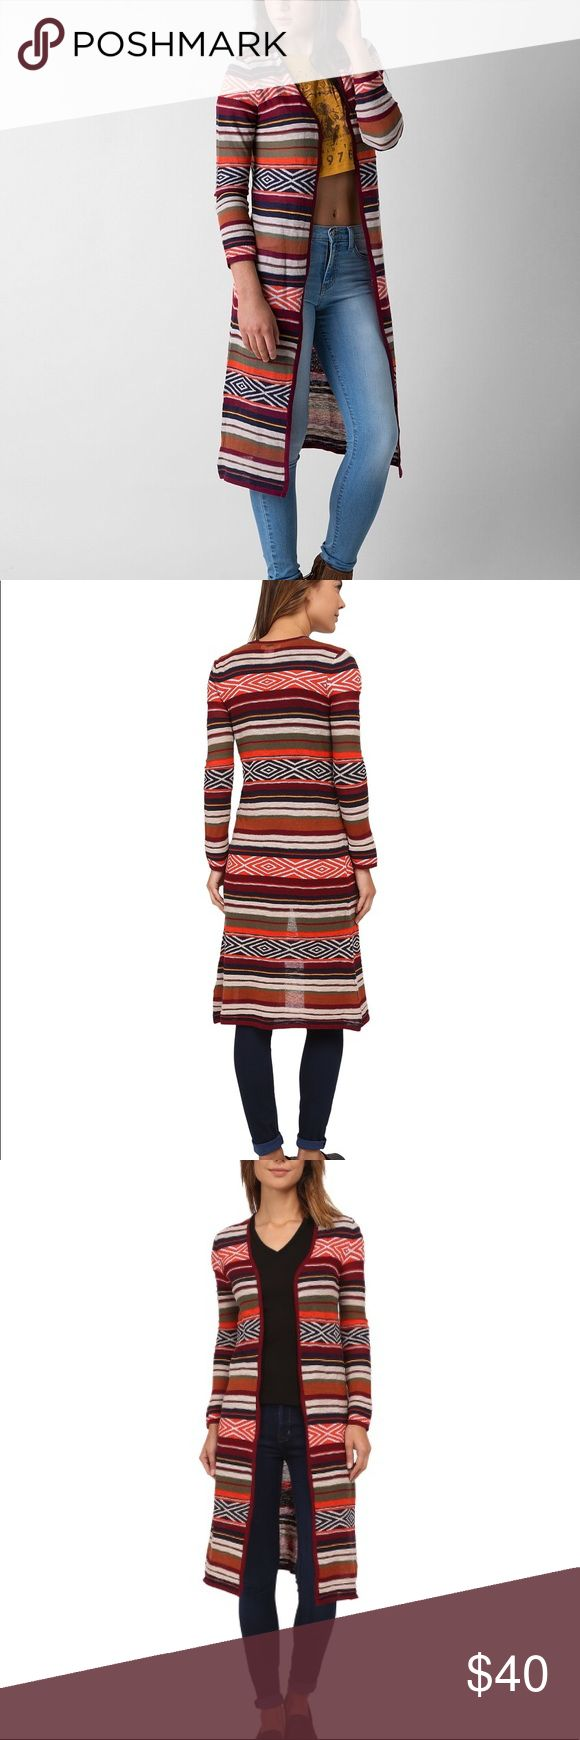 Billabong Shadow Stripe Duster Sweater Cardigan NWOT Billabong shadow stripe midi duster sweater. Southwestern pattern & colors. Hits around knee or mid calf, maxi if you're super short. Approx. 43 inches. Sz Medium, stretchy, personally I find it fits more like a small. Would look good on XS too. Lightweight knit. Machine wash dry flat Billabong Sweaters Cardigans